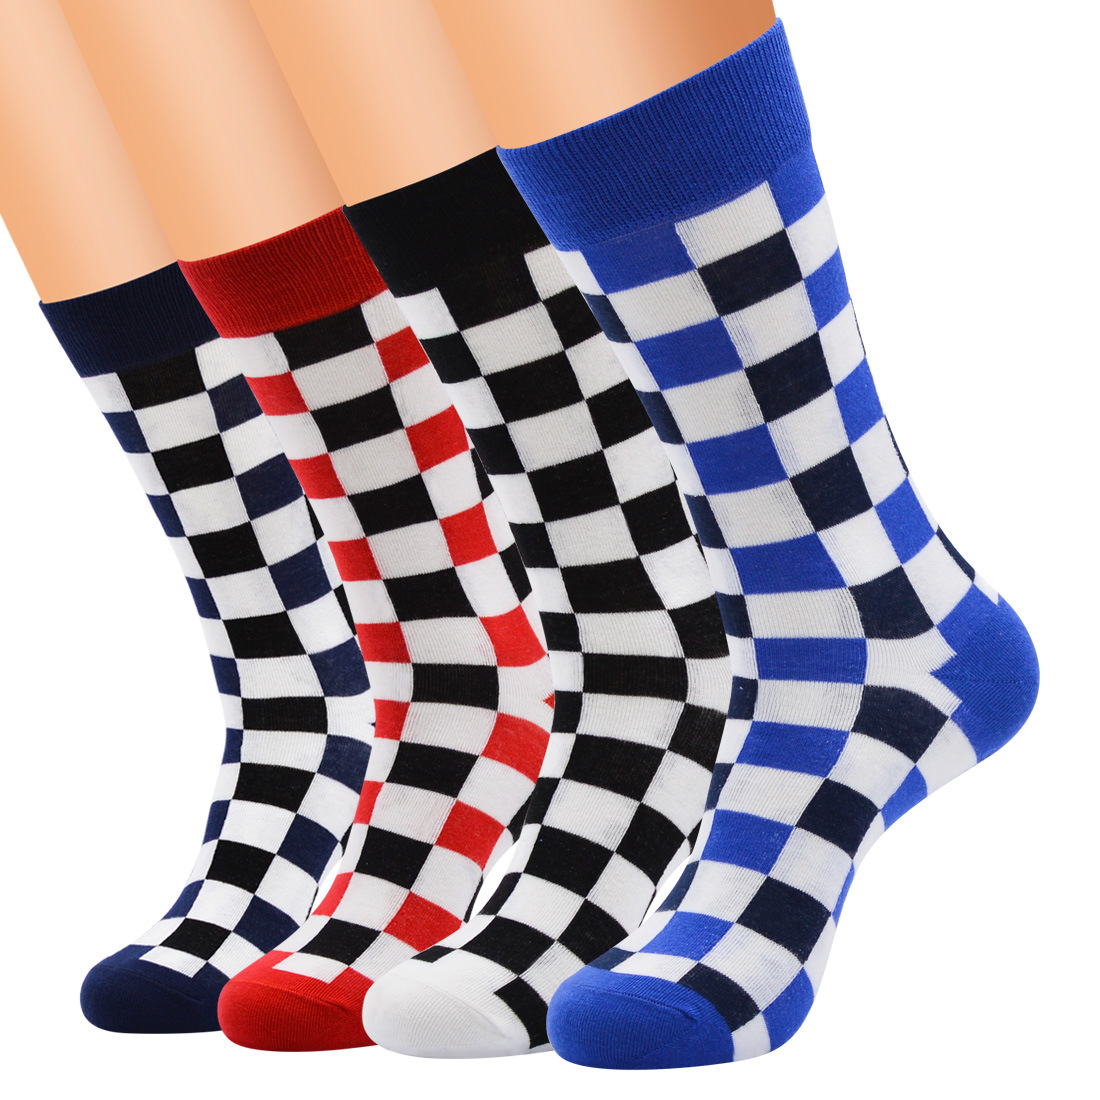 12 Pairs Korea Fashion Harajuku Trends Male Checkerboard Socks Style Geometric Checkered Socks Men Hip Hop Cotton Unisex Soks